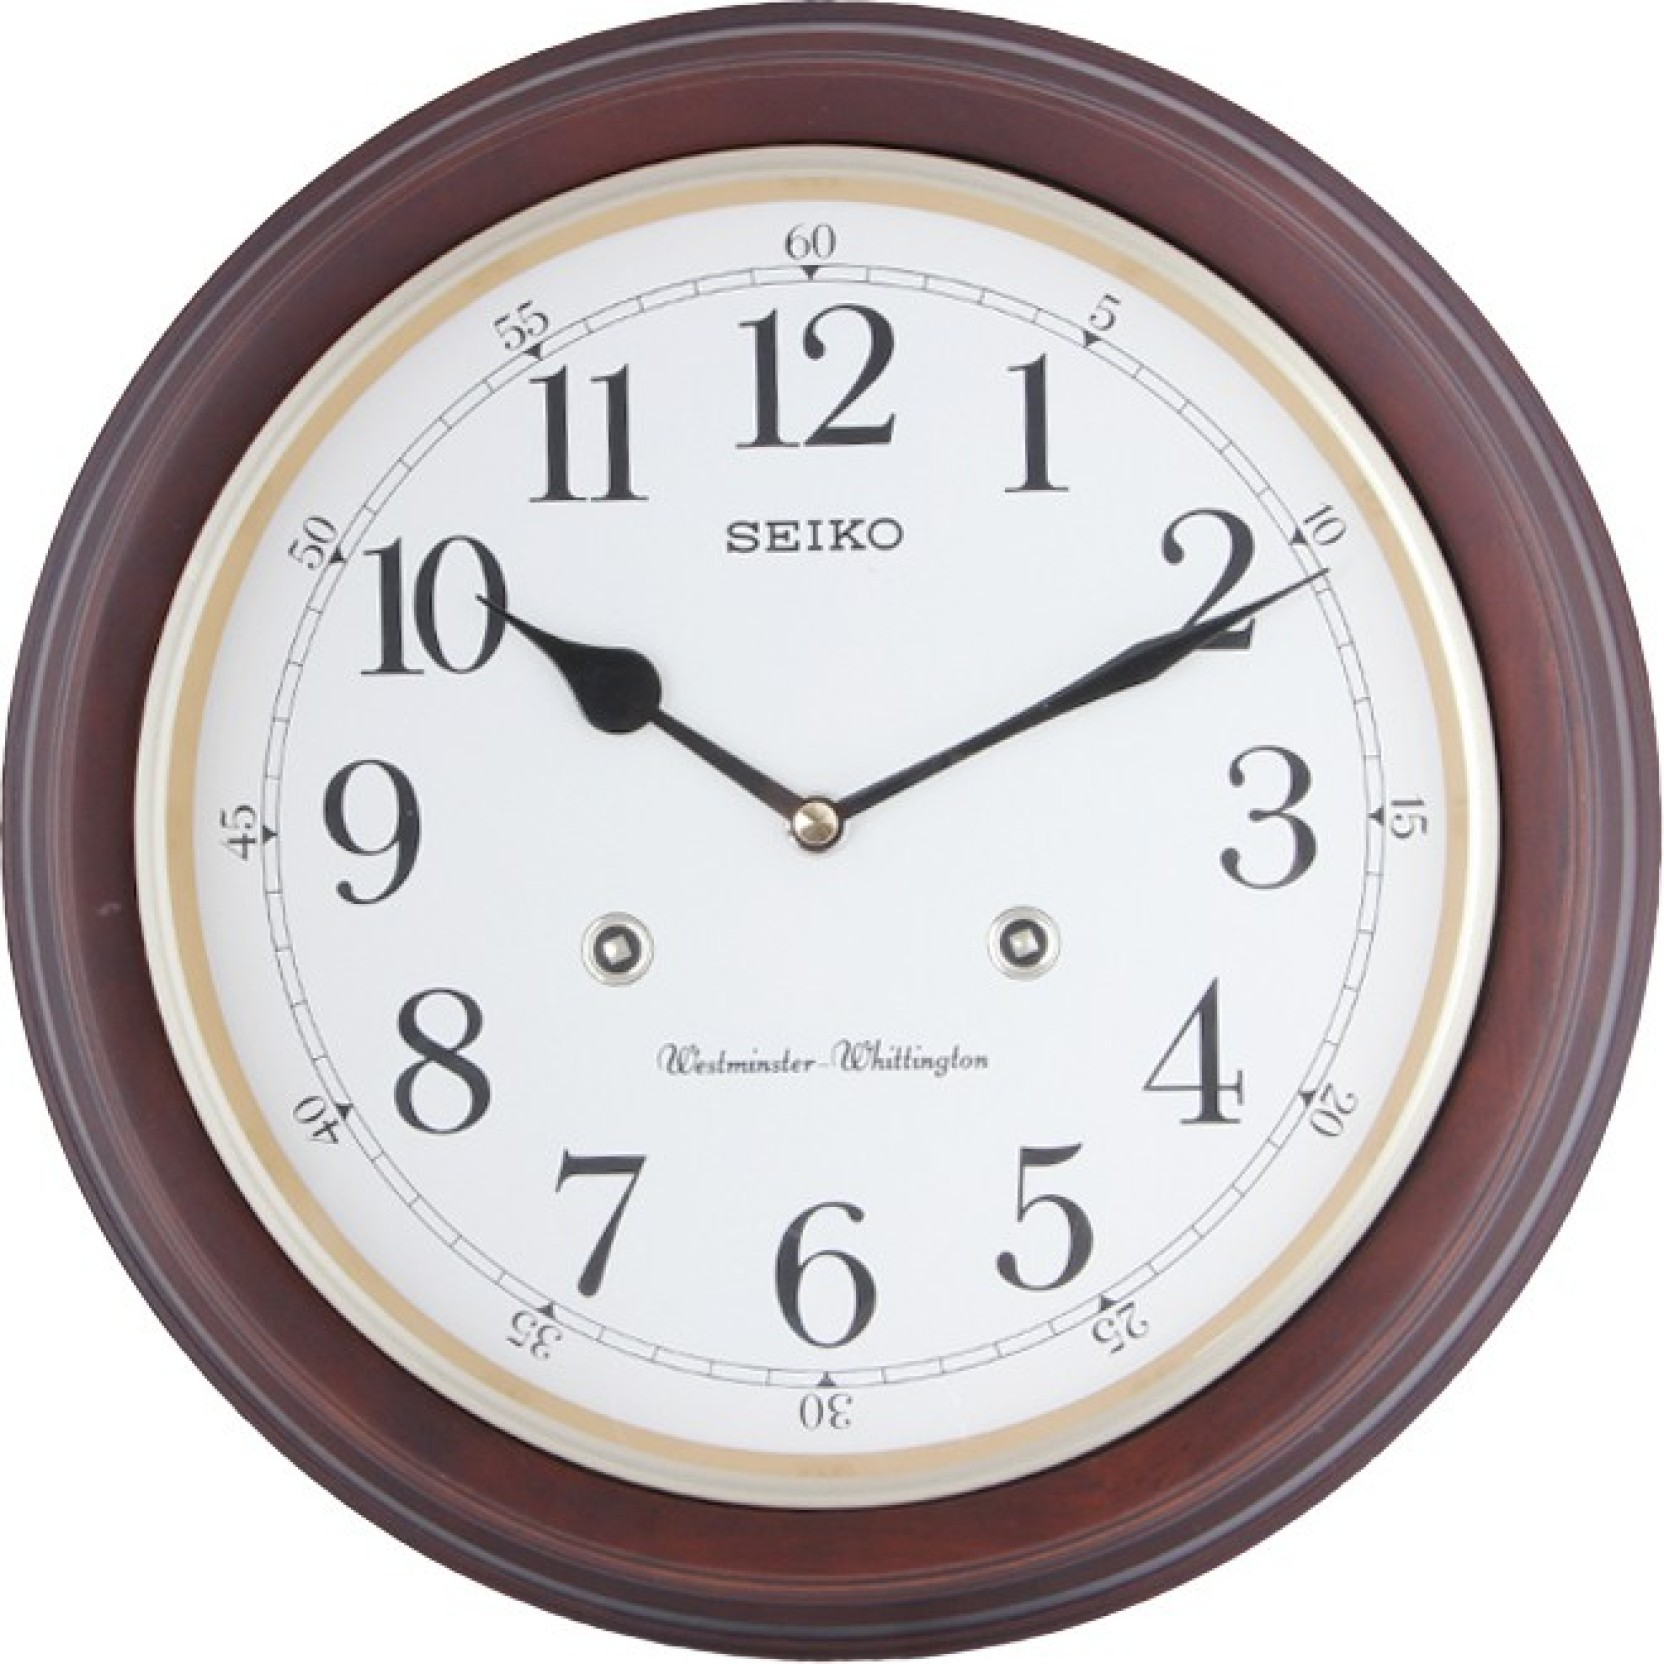 Seiko analog wall clock price in india buy seiko analog wall seiko analog wall clock wishlist amipublicfo Image collections